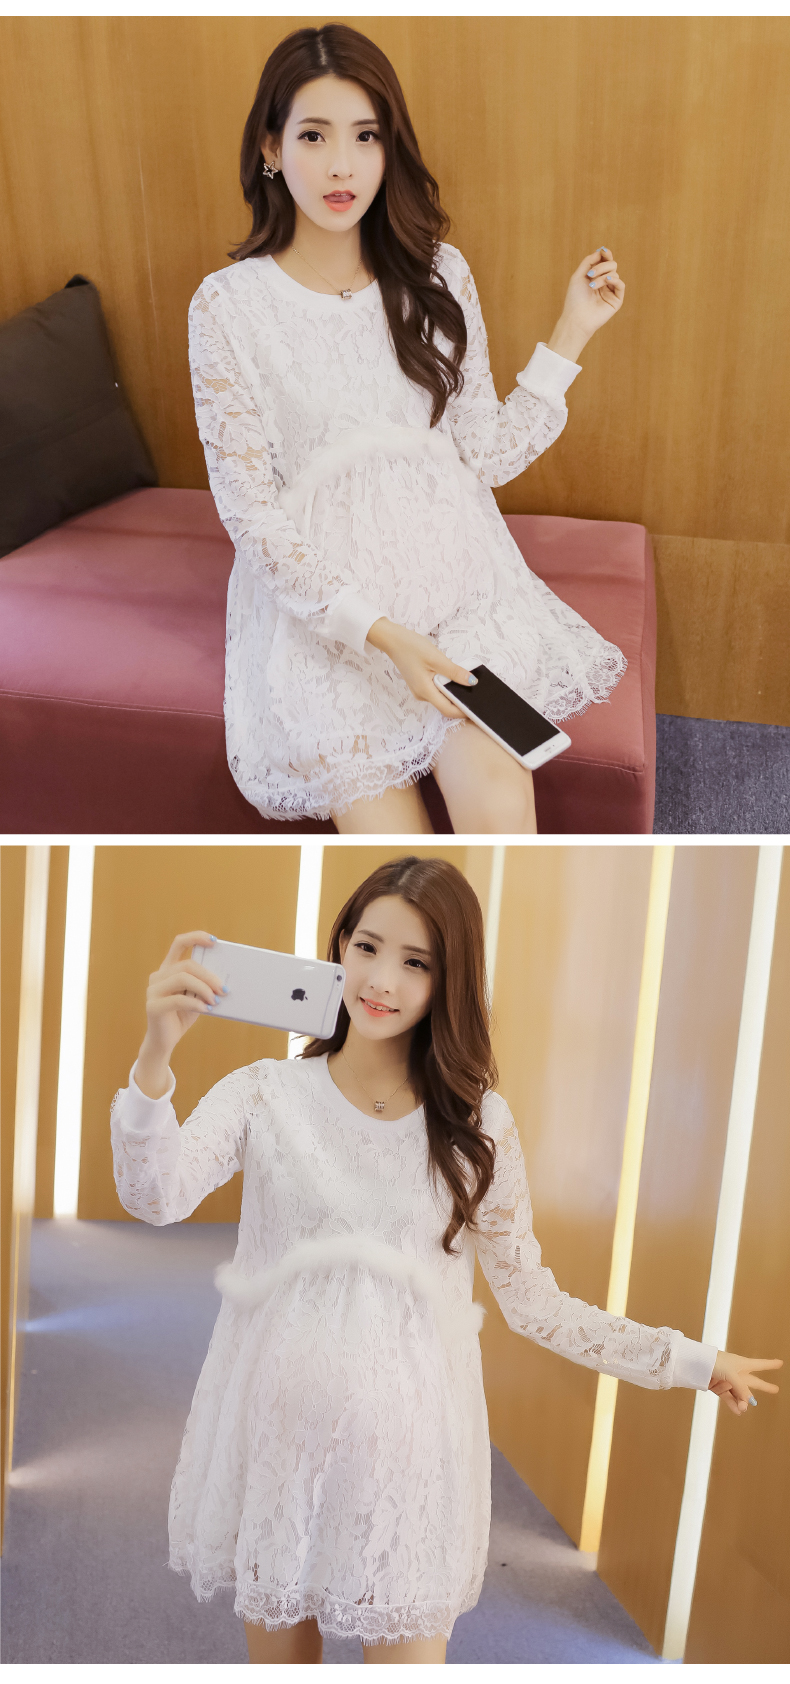 2016 robe de grossesse shooting Pregnant women white lace dress fashion long sleeved maternity gown dress breastfeeding clothes